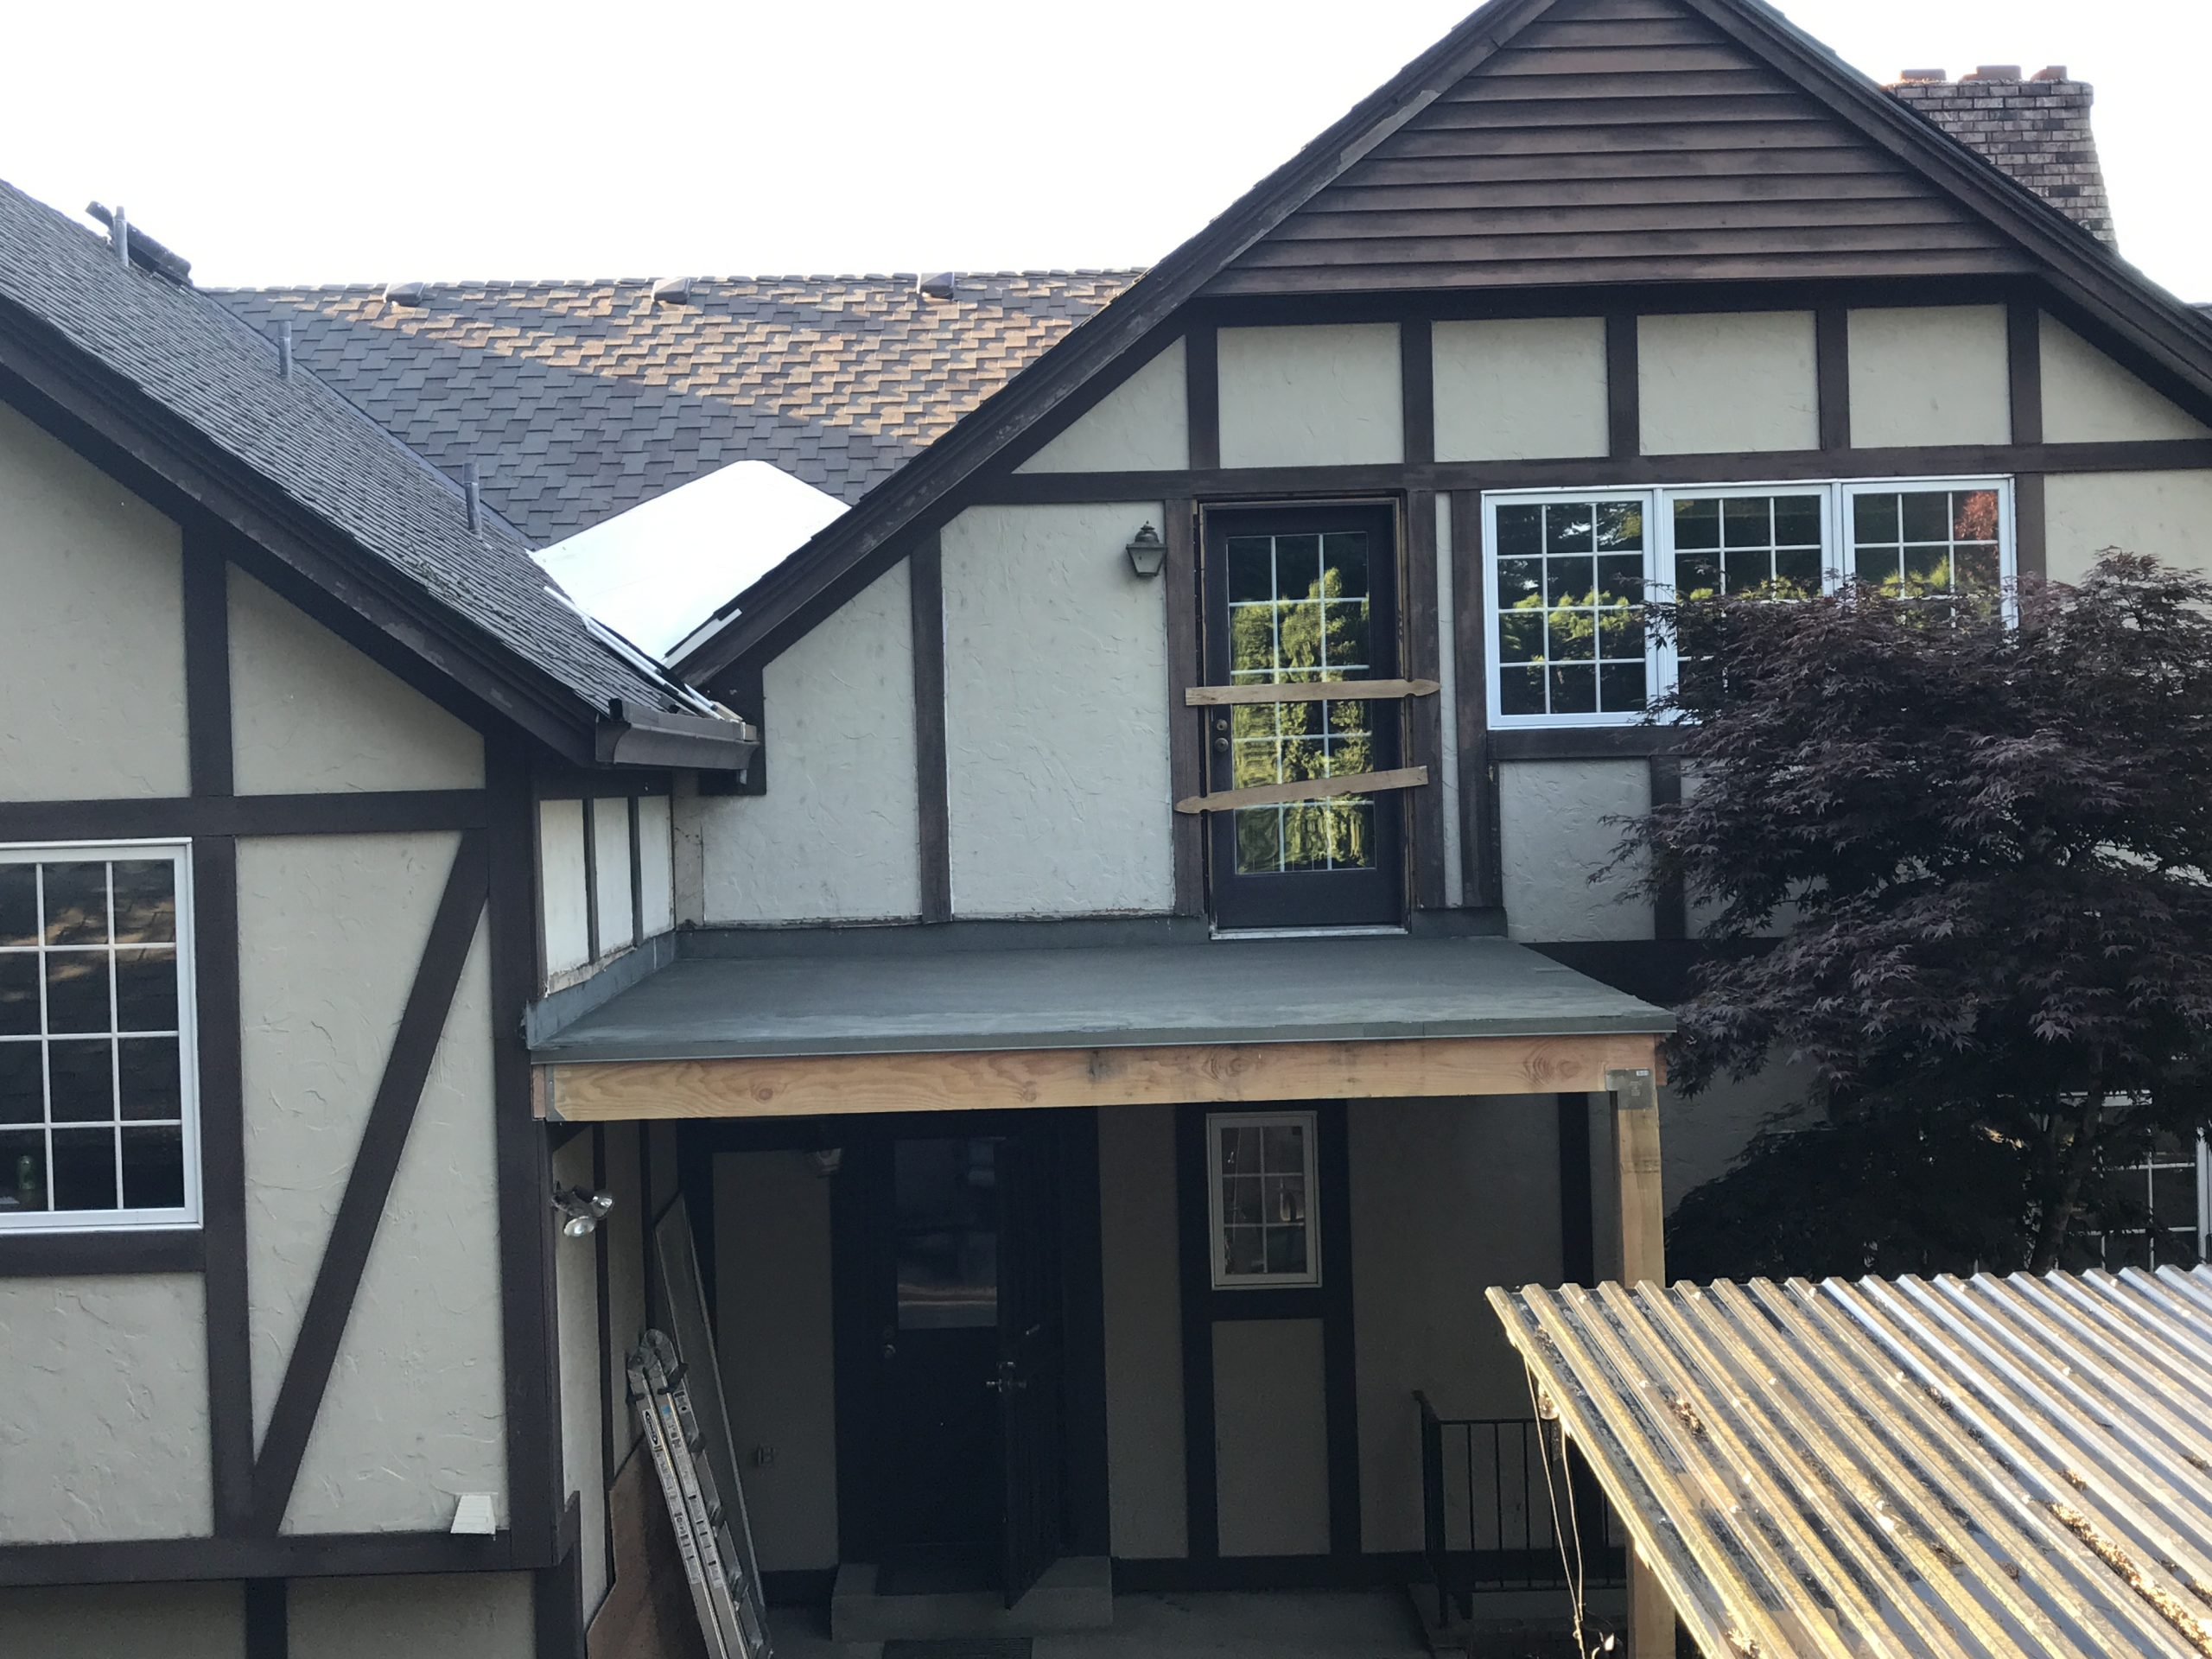 Decking In Salem Oregon - Cascadia Exteriors on Cascadia Outdoor Living Spaces id=14678